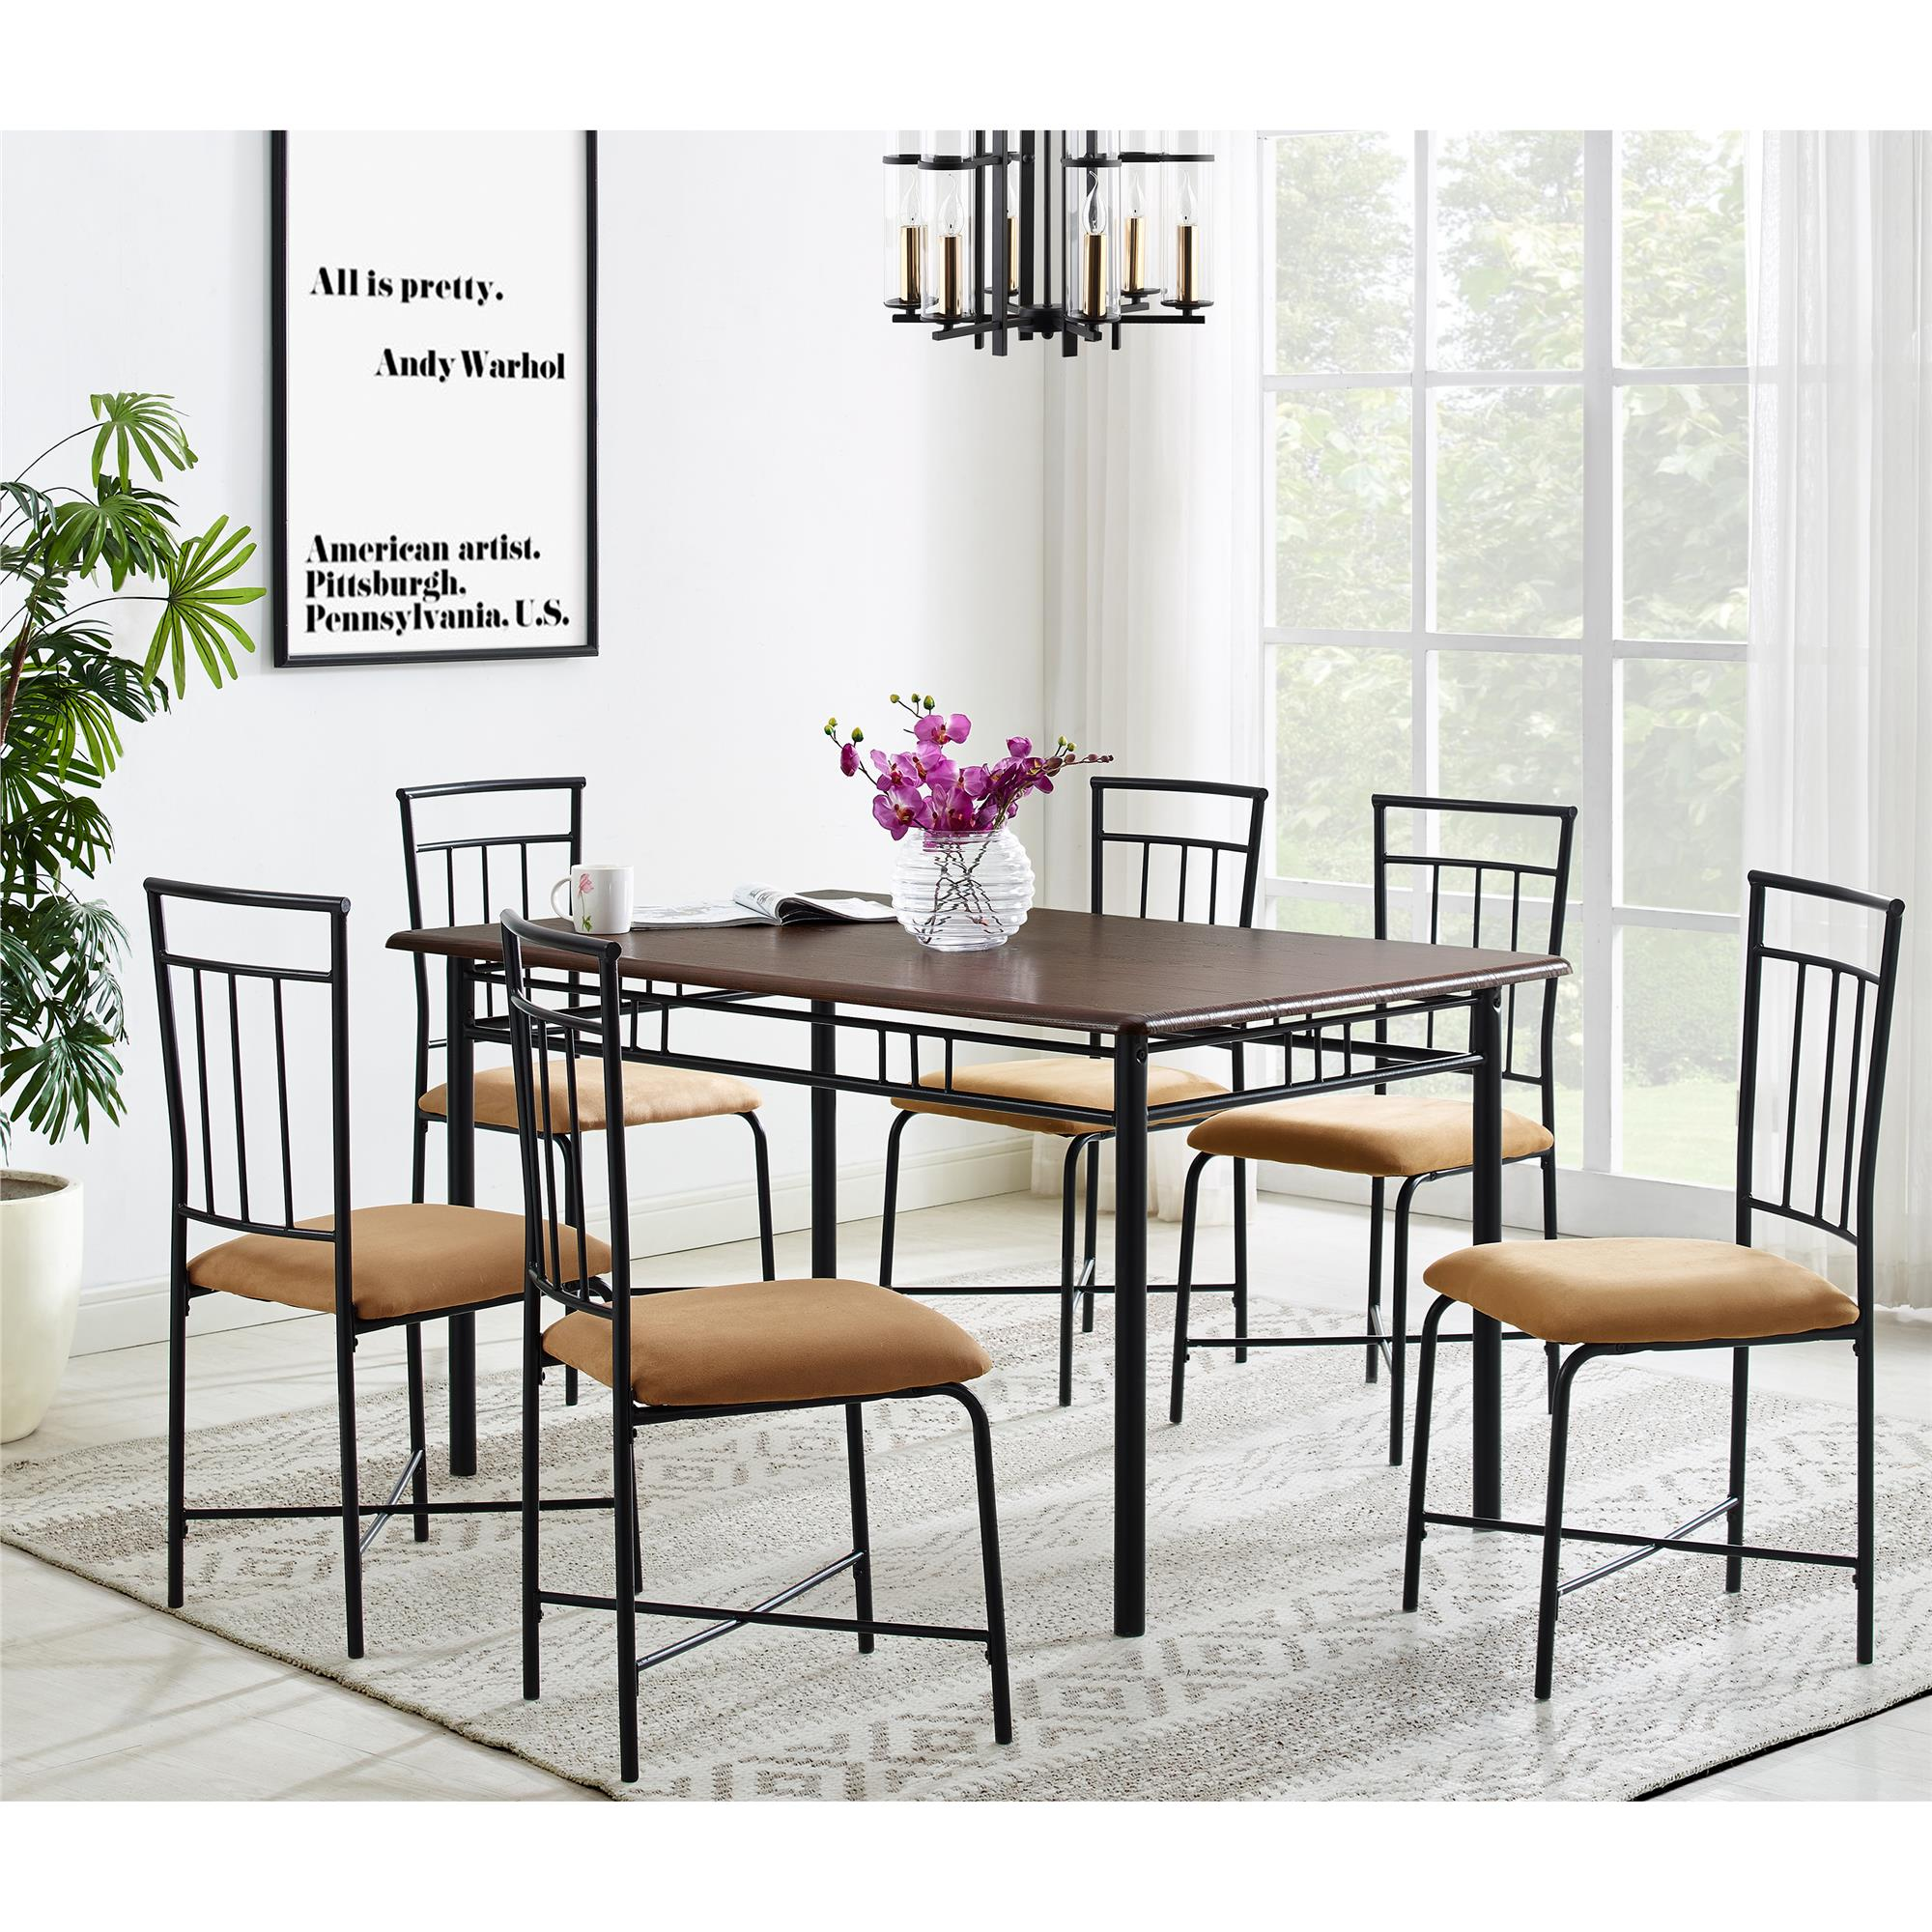 Mainstays 7 Piece Wood And Metal Dining Set   Walmart.com